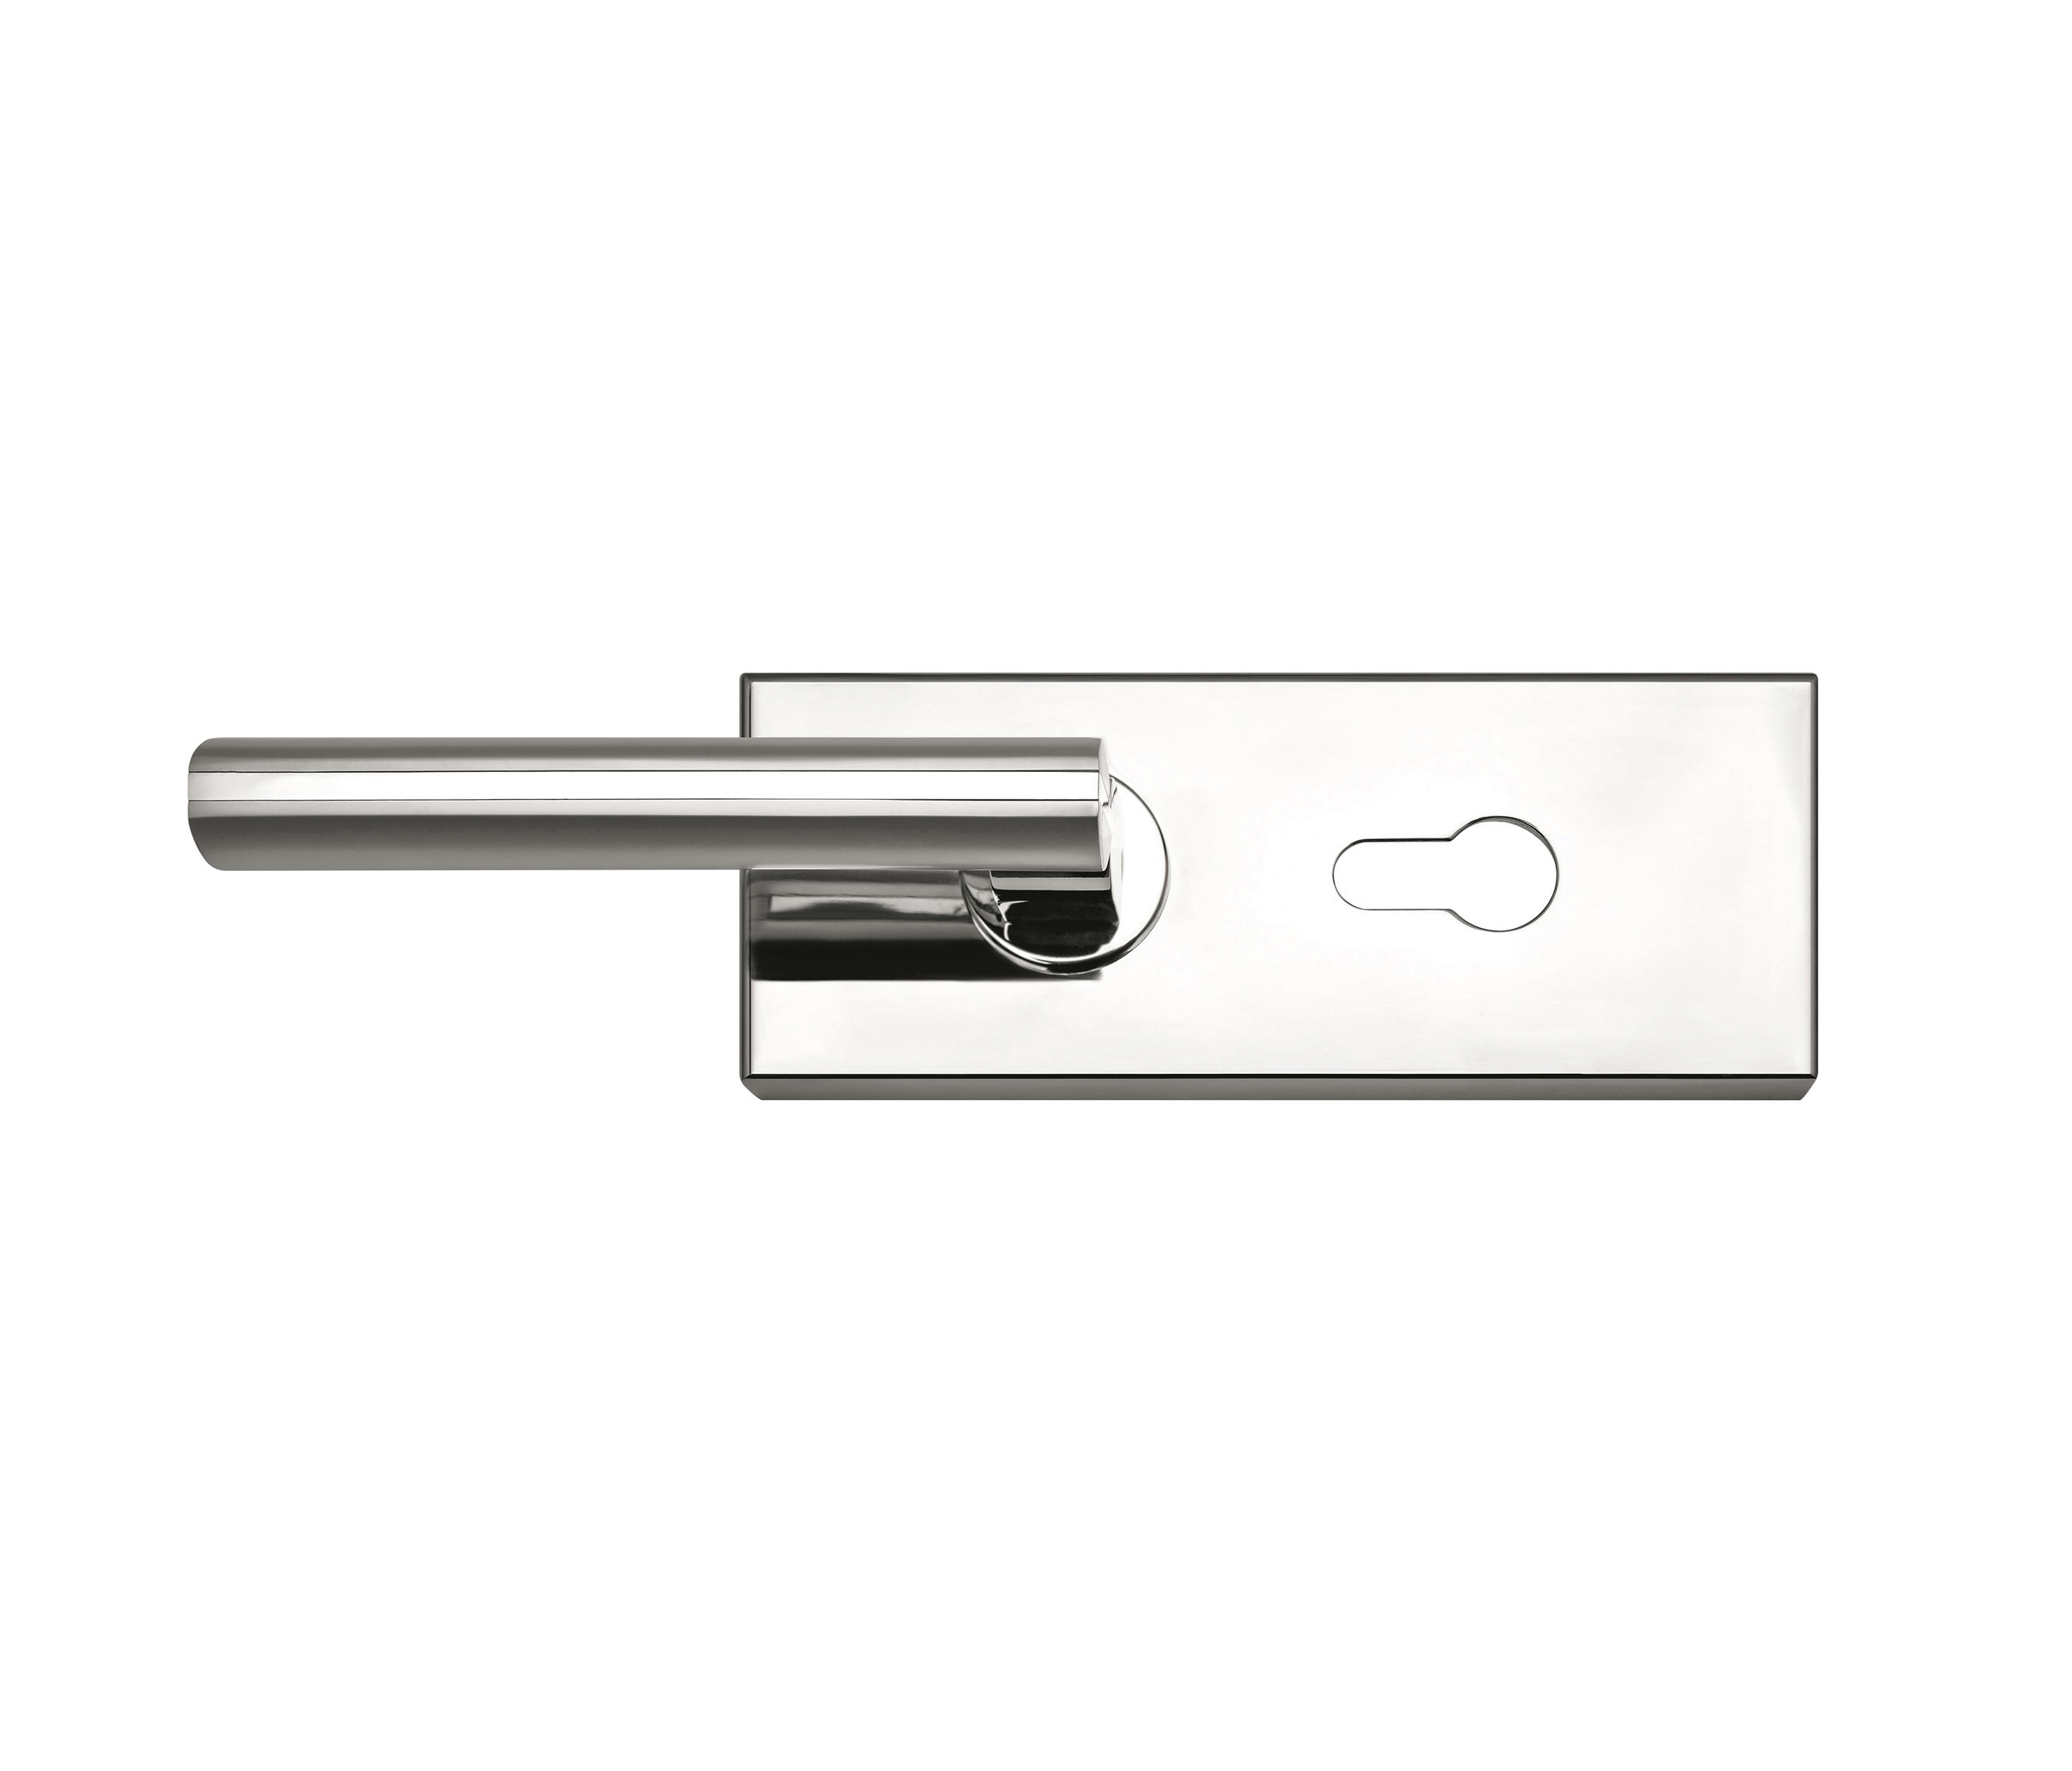 Glass door fitting EGS110 (71) by Karcher Design | Handle sets for glass doors ...  sc 1 st  Architonic & GLASS DOOR FITTING EGS110 (71) - Handle sets for glass doors from ...